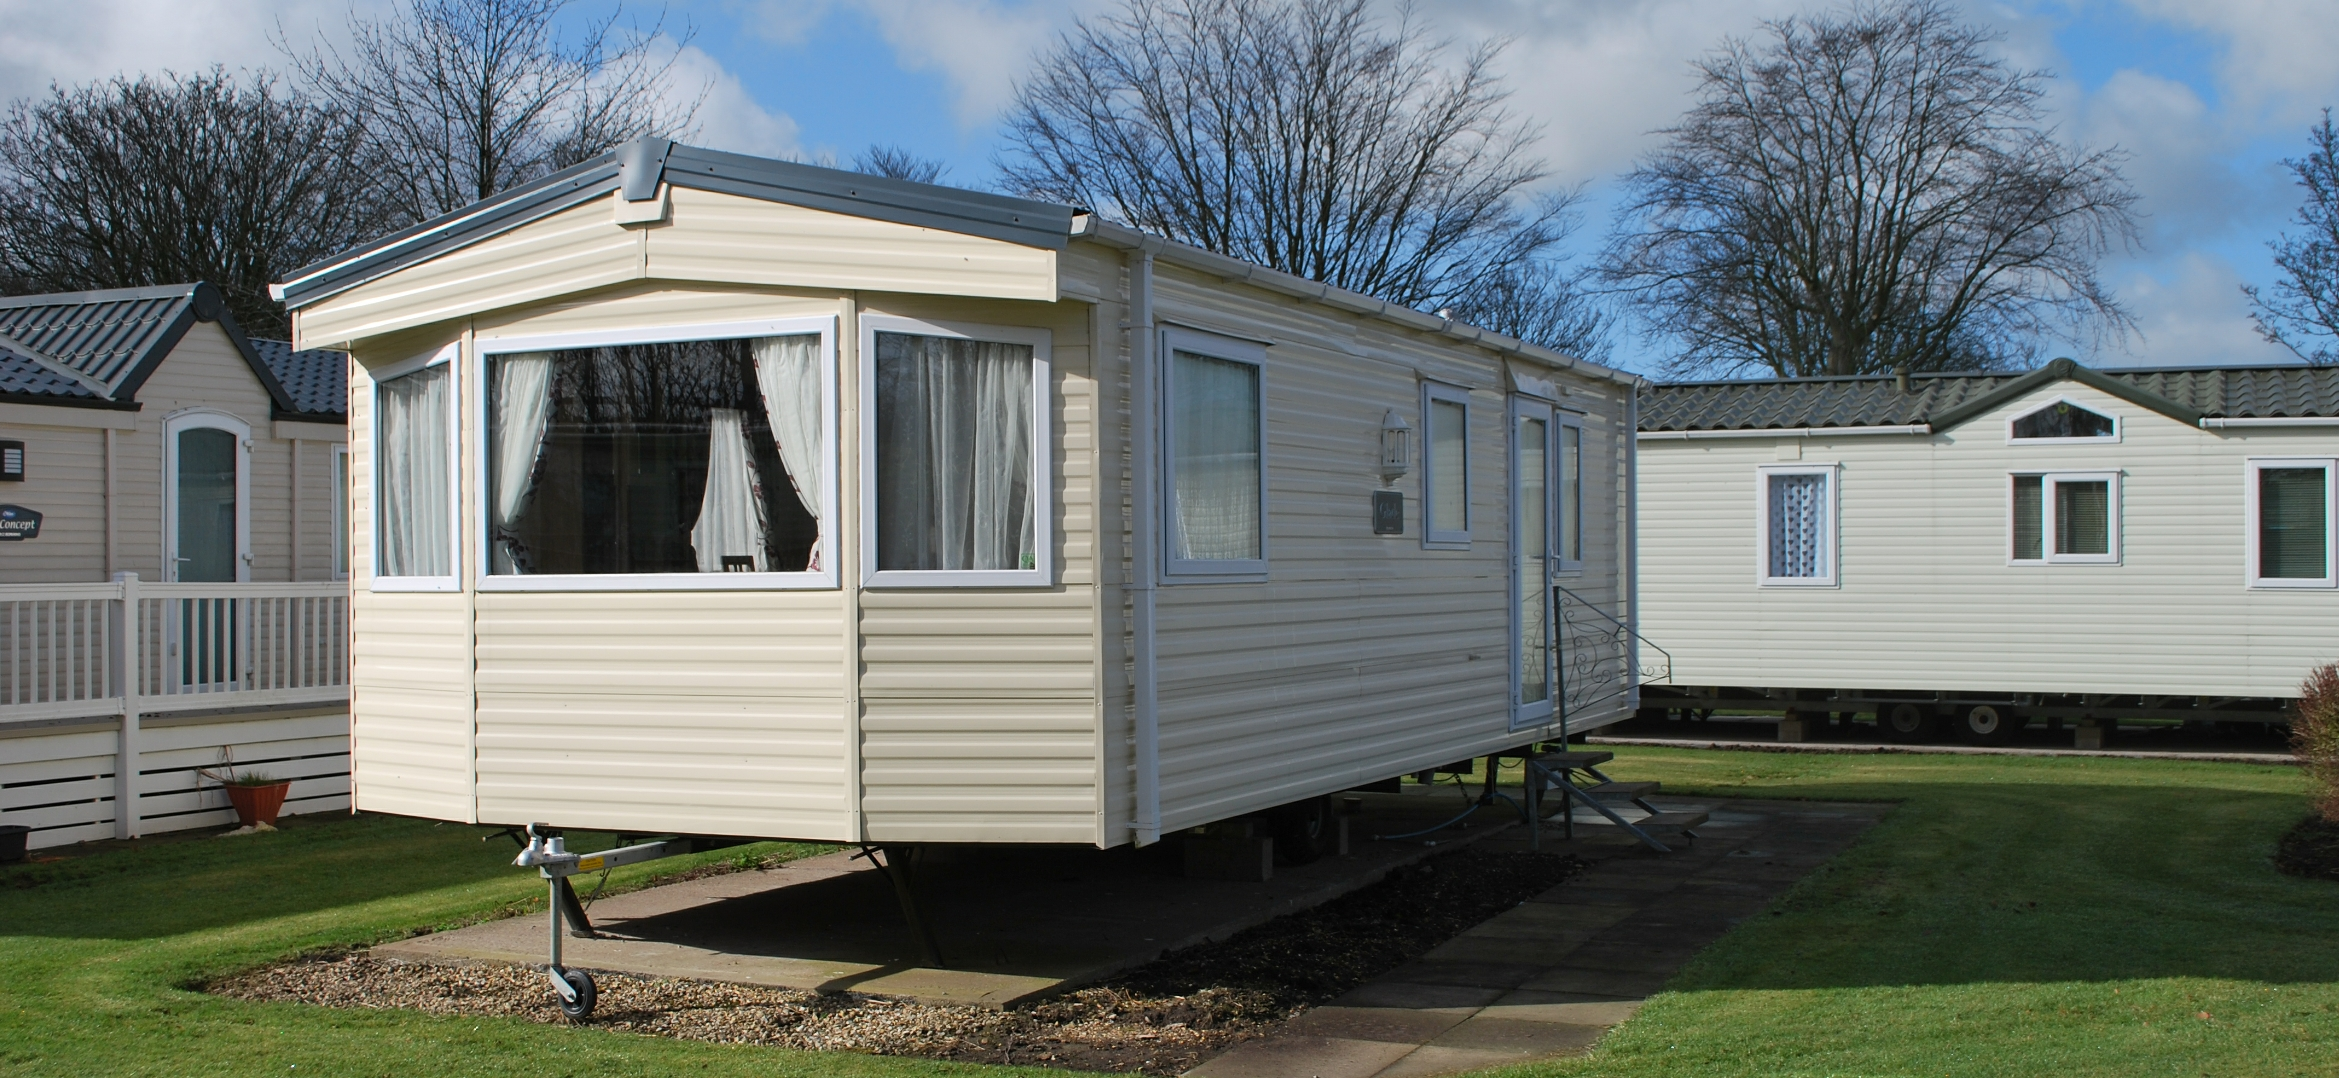 Caravan Holiday Homes For Sale In Lancashire